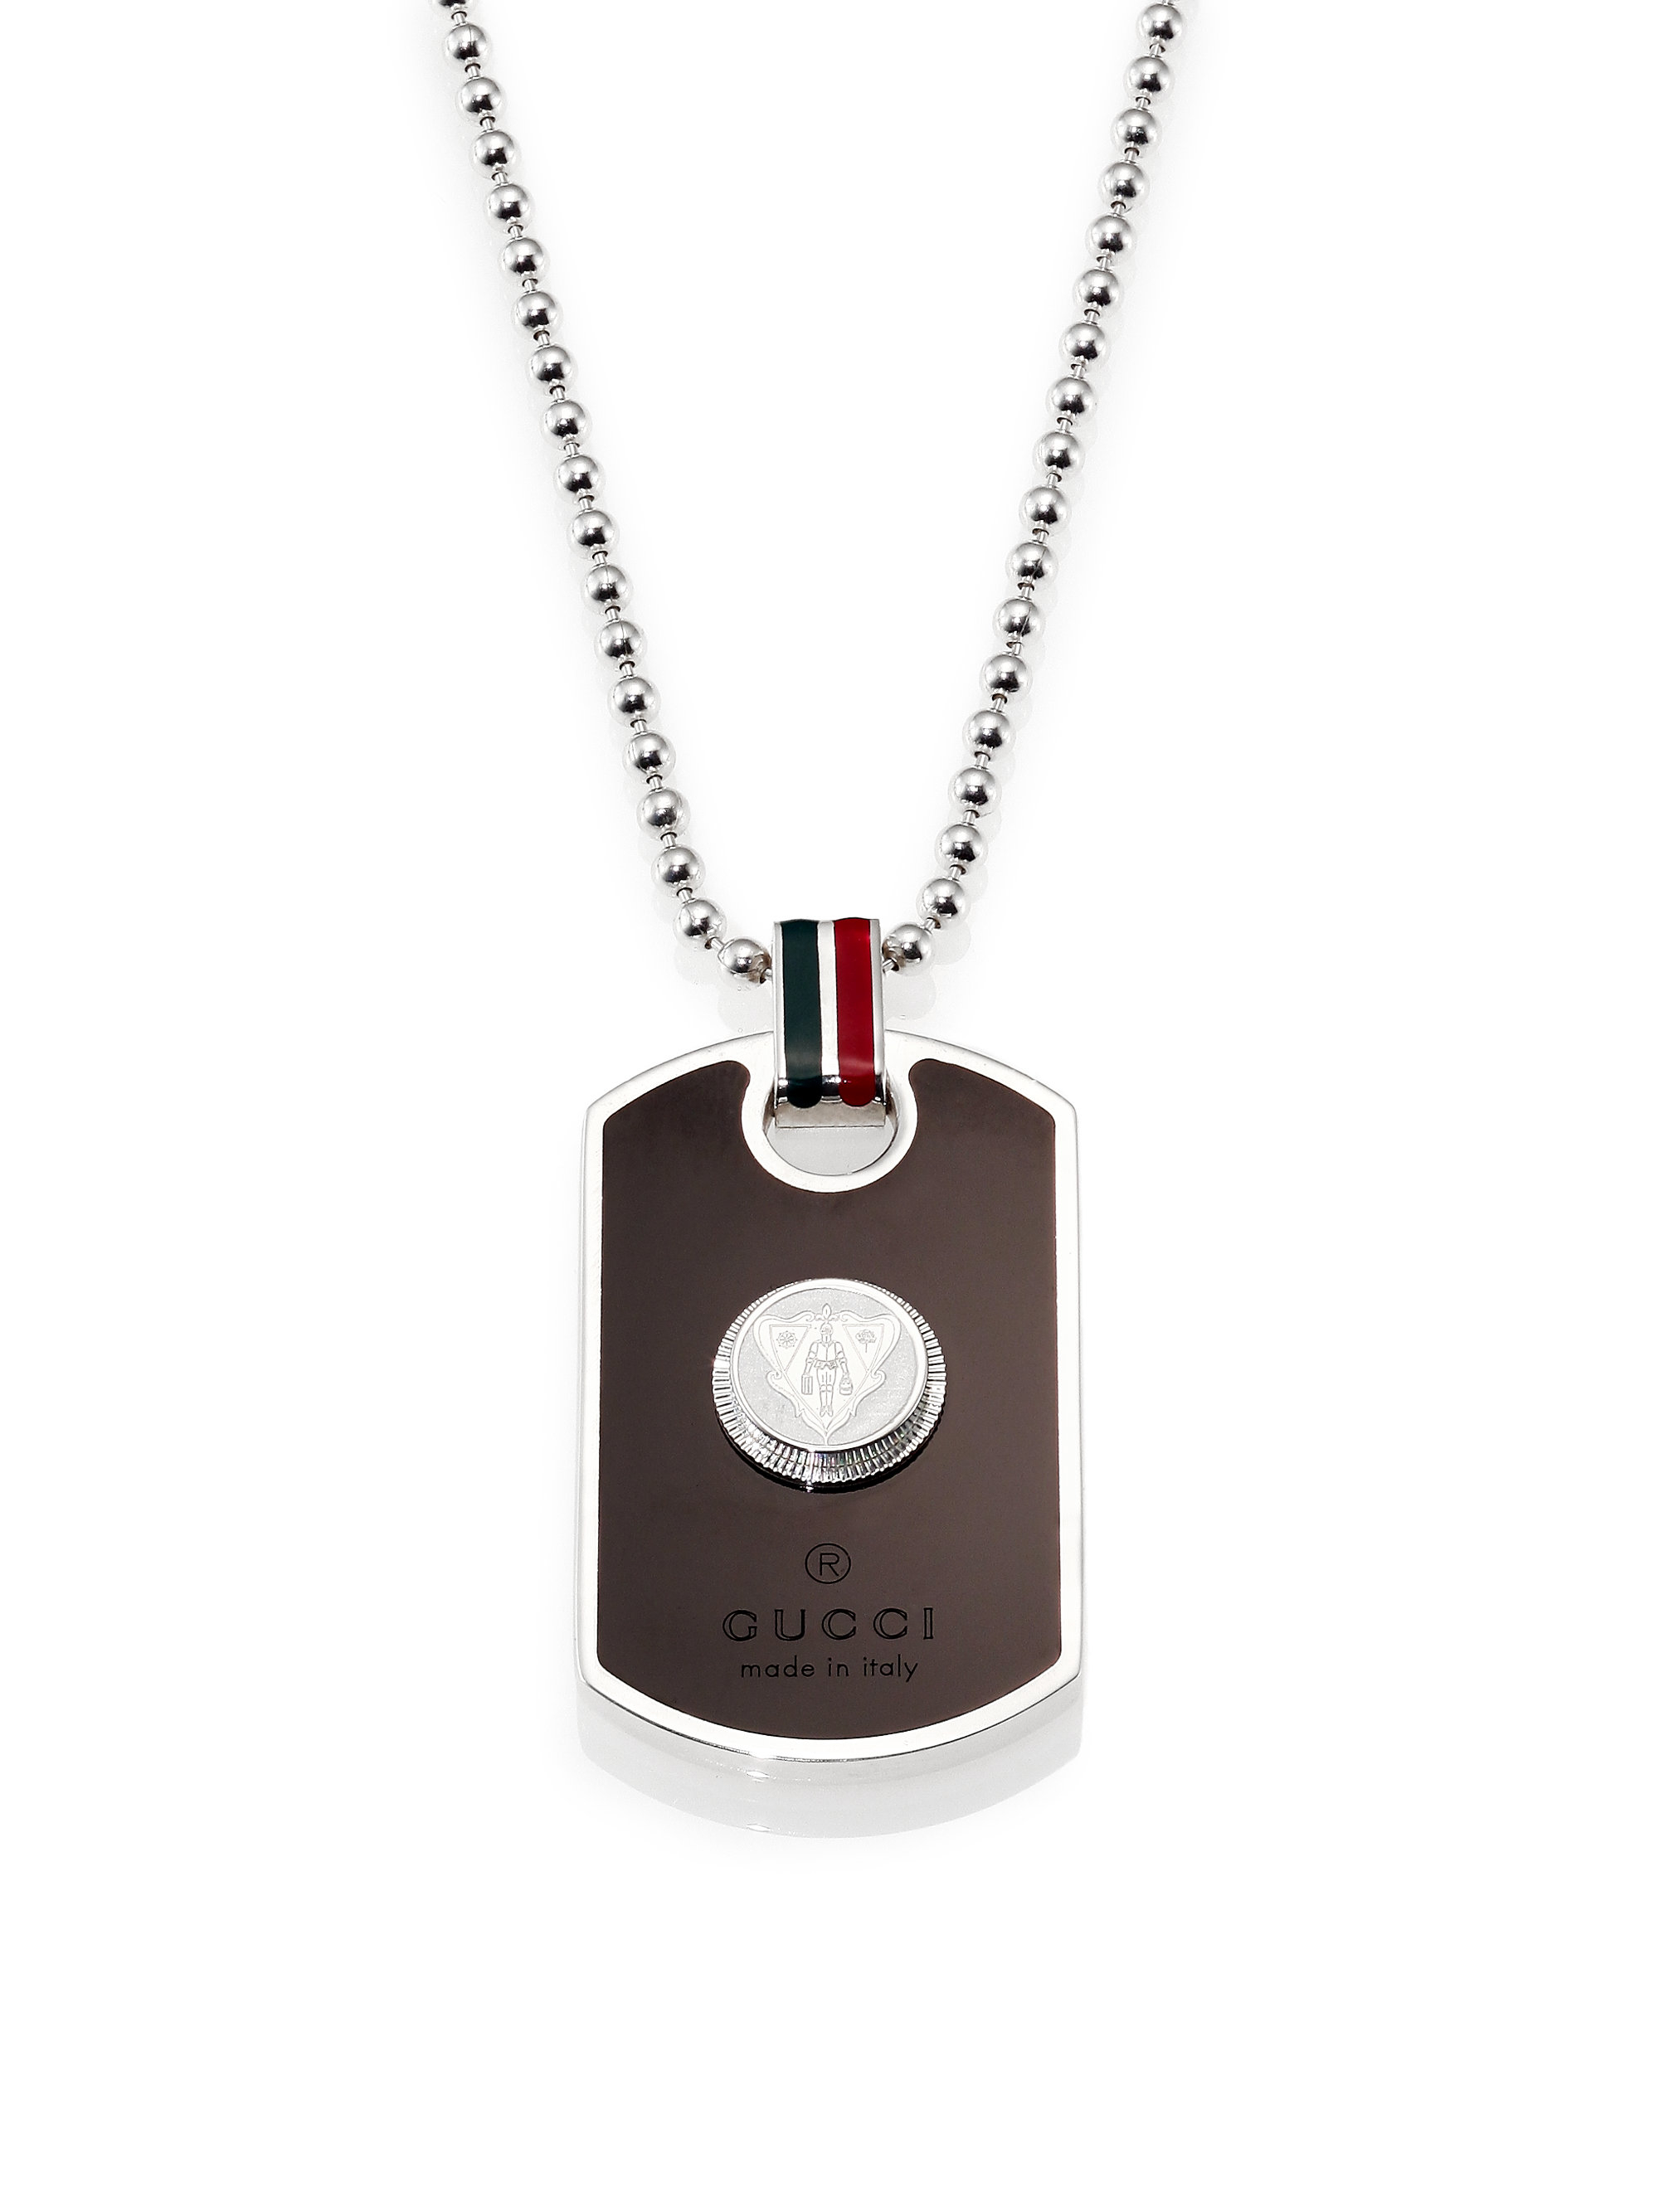 Gucci Dog Tag Necklace in Metallic for Men